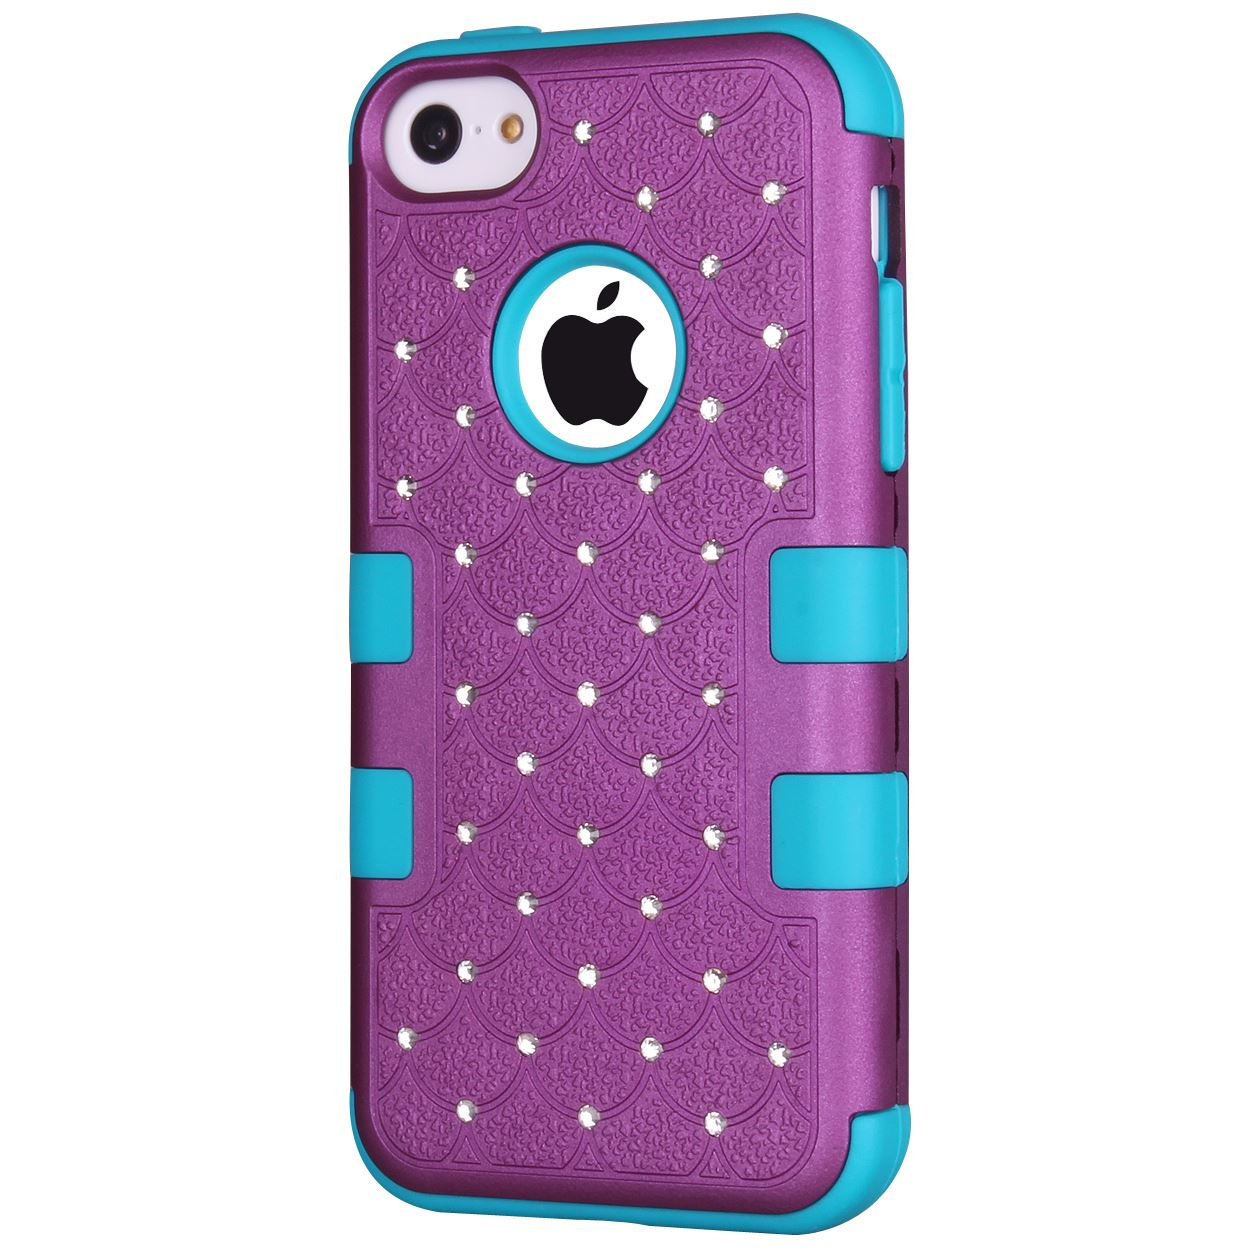 Cute iPhone 5C Bling Cases